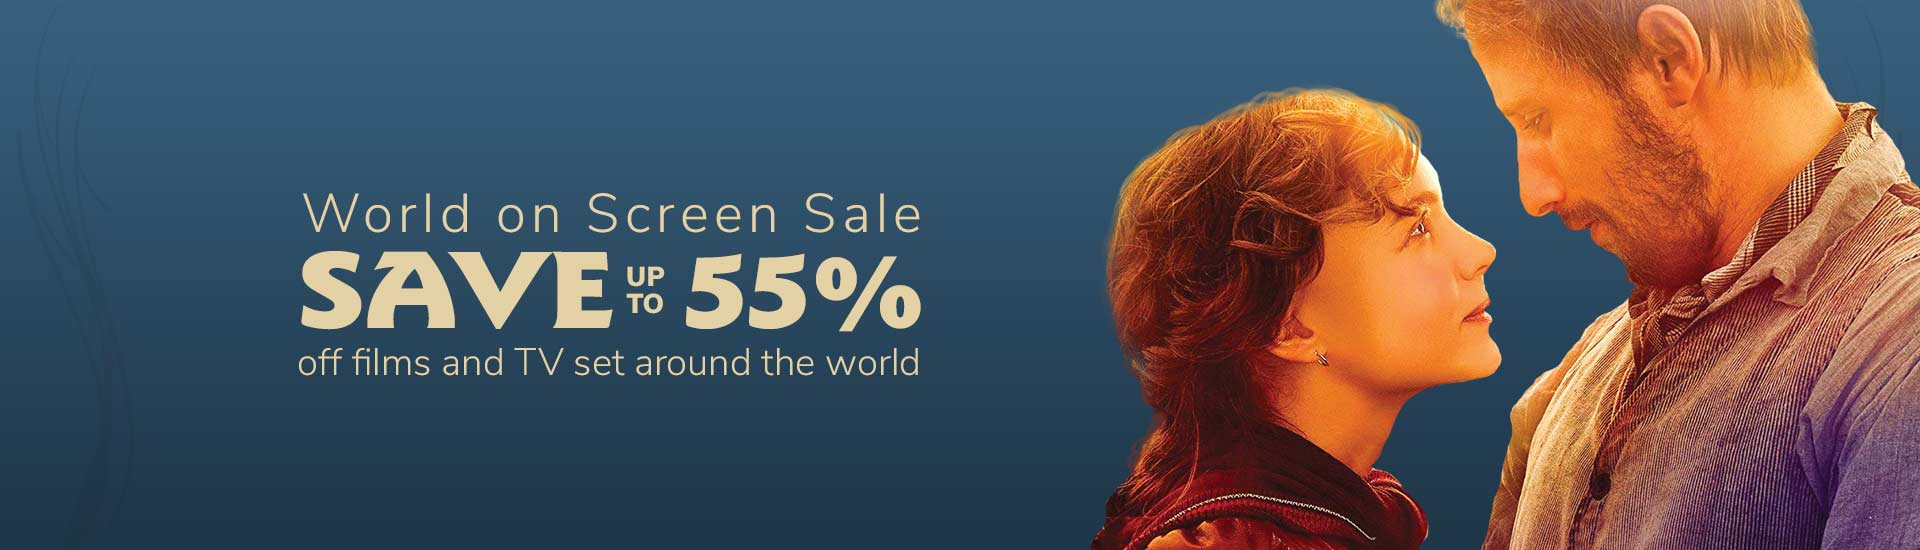 Save up to 55% on Films & TV set around the world!